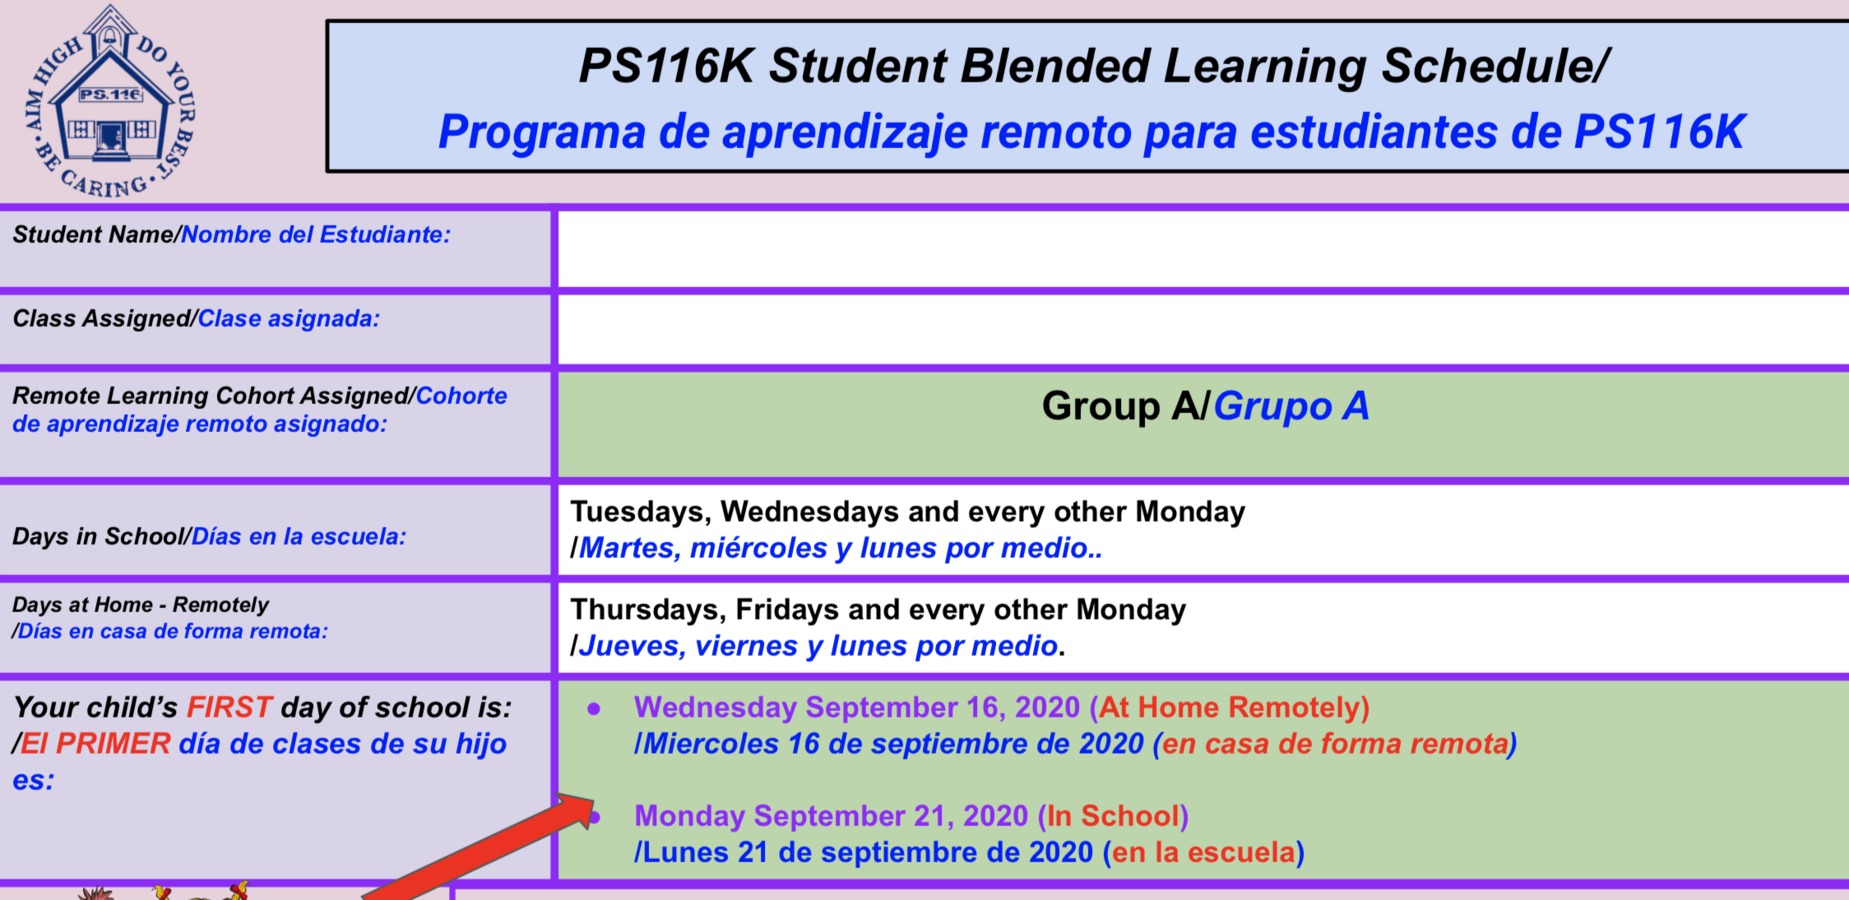 Group A Learning Schedule